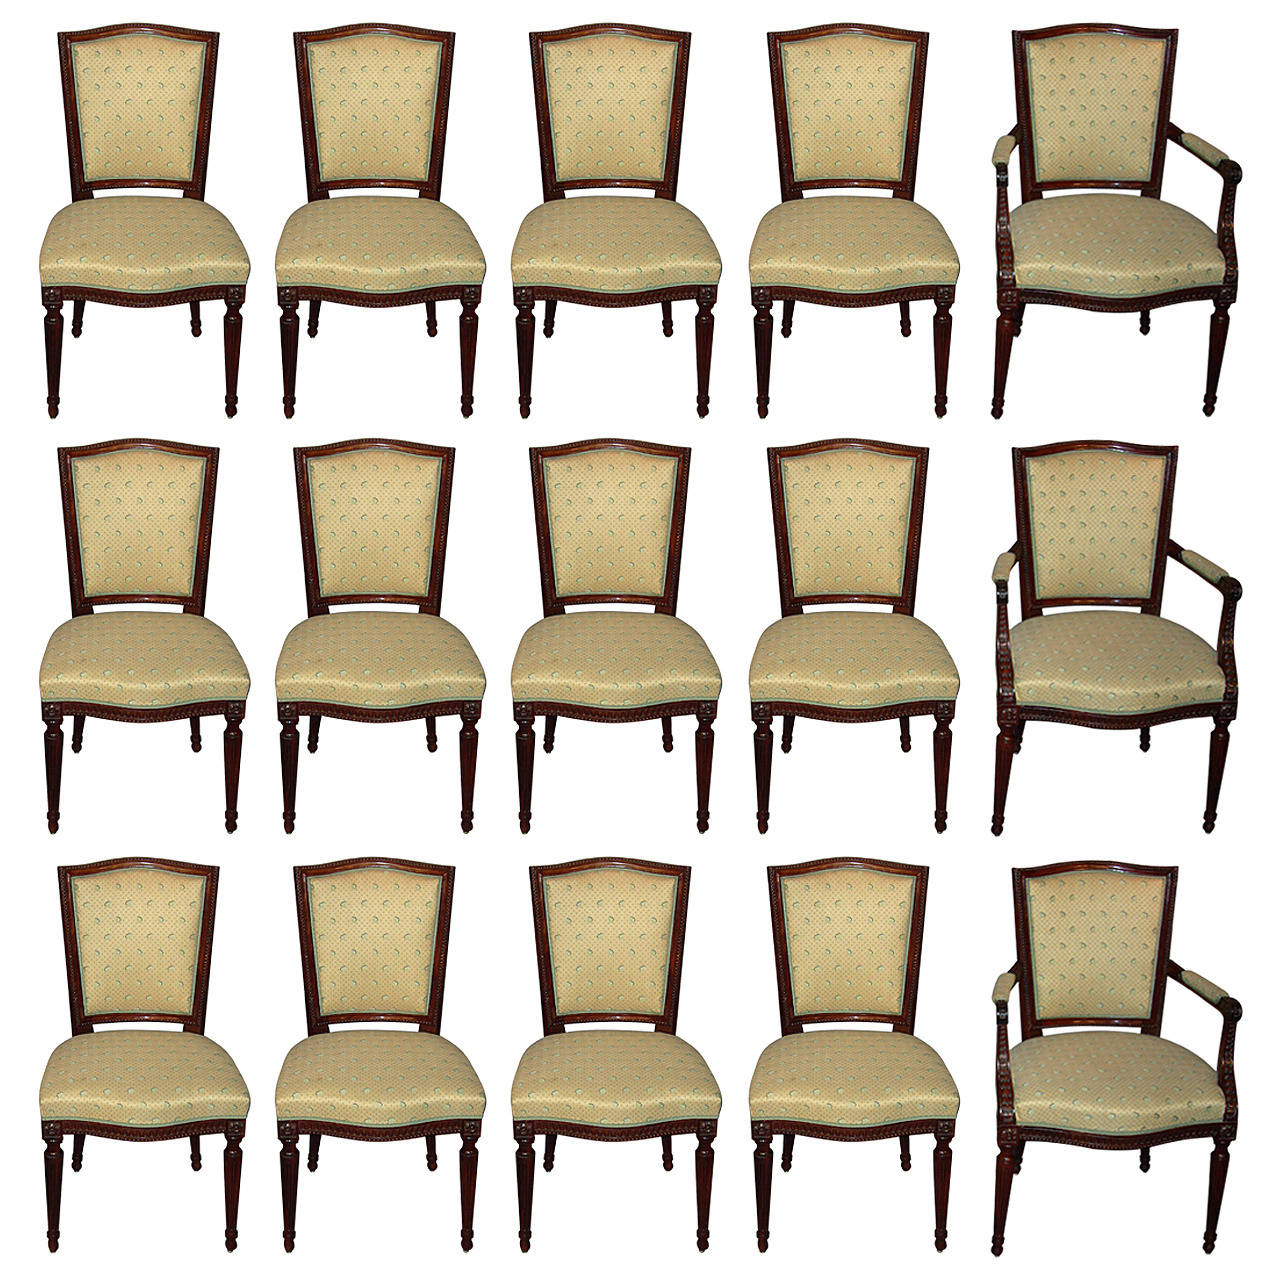 Suite of Twelve Dutch Louis XVI Chairs and Three Armchairs